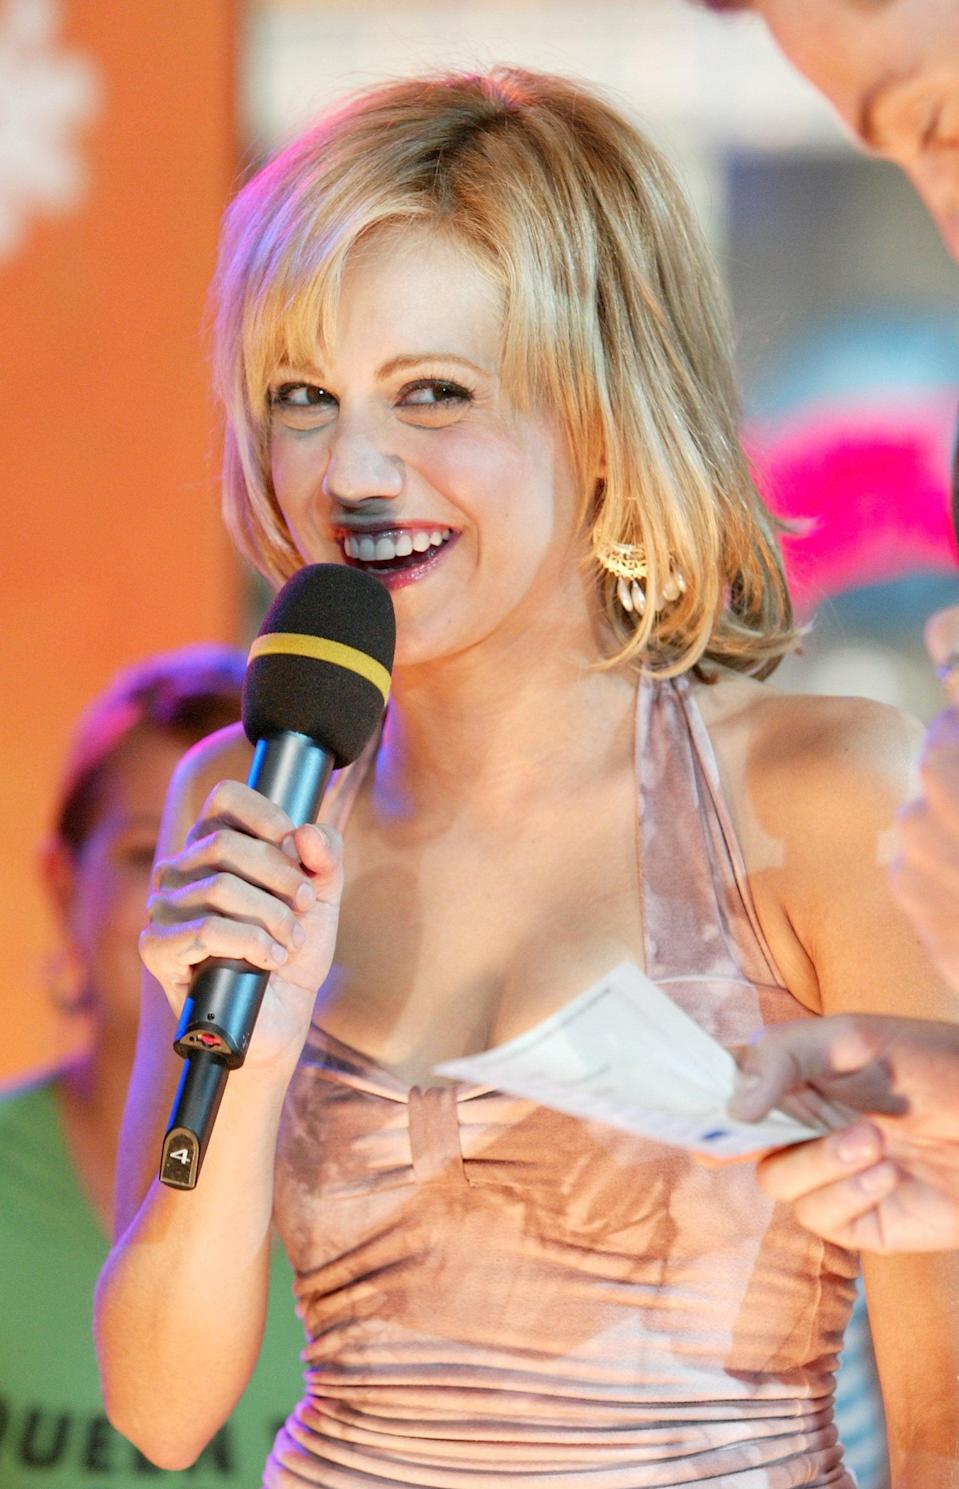 """<p><a class=""""link rapid-noclick-resp"""" href=""""https://www.popsugar.com/Brittany-Murphy"""" rel=""""nofollow noopener"""" target=""""_blank"""" data-ylk=""""slk:Brittany Murphy"""">Brittany Murphy</a> promoted her movie <b>Uptown Girls</b> with a 2003 <b>TRL</b> appearance.</p>"""